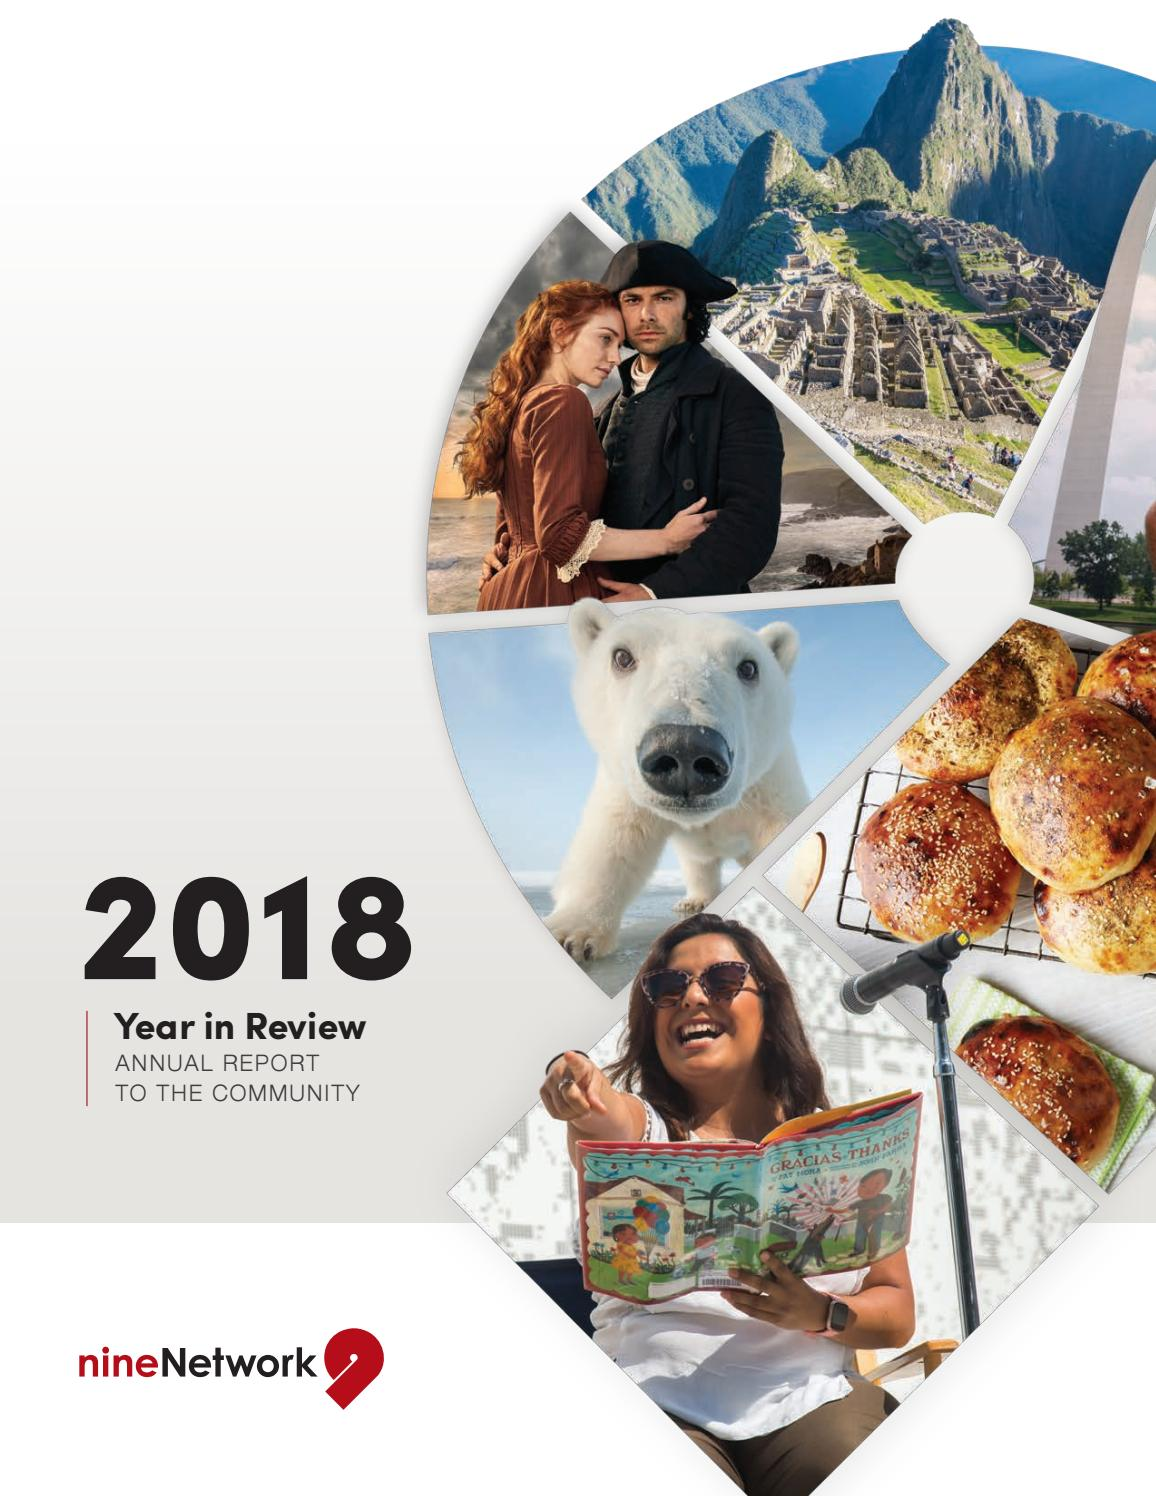 2018 Year In Review Annual Report To The Community By Nine